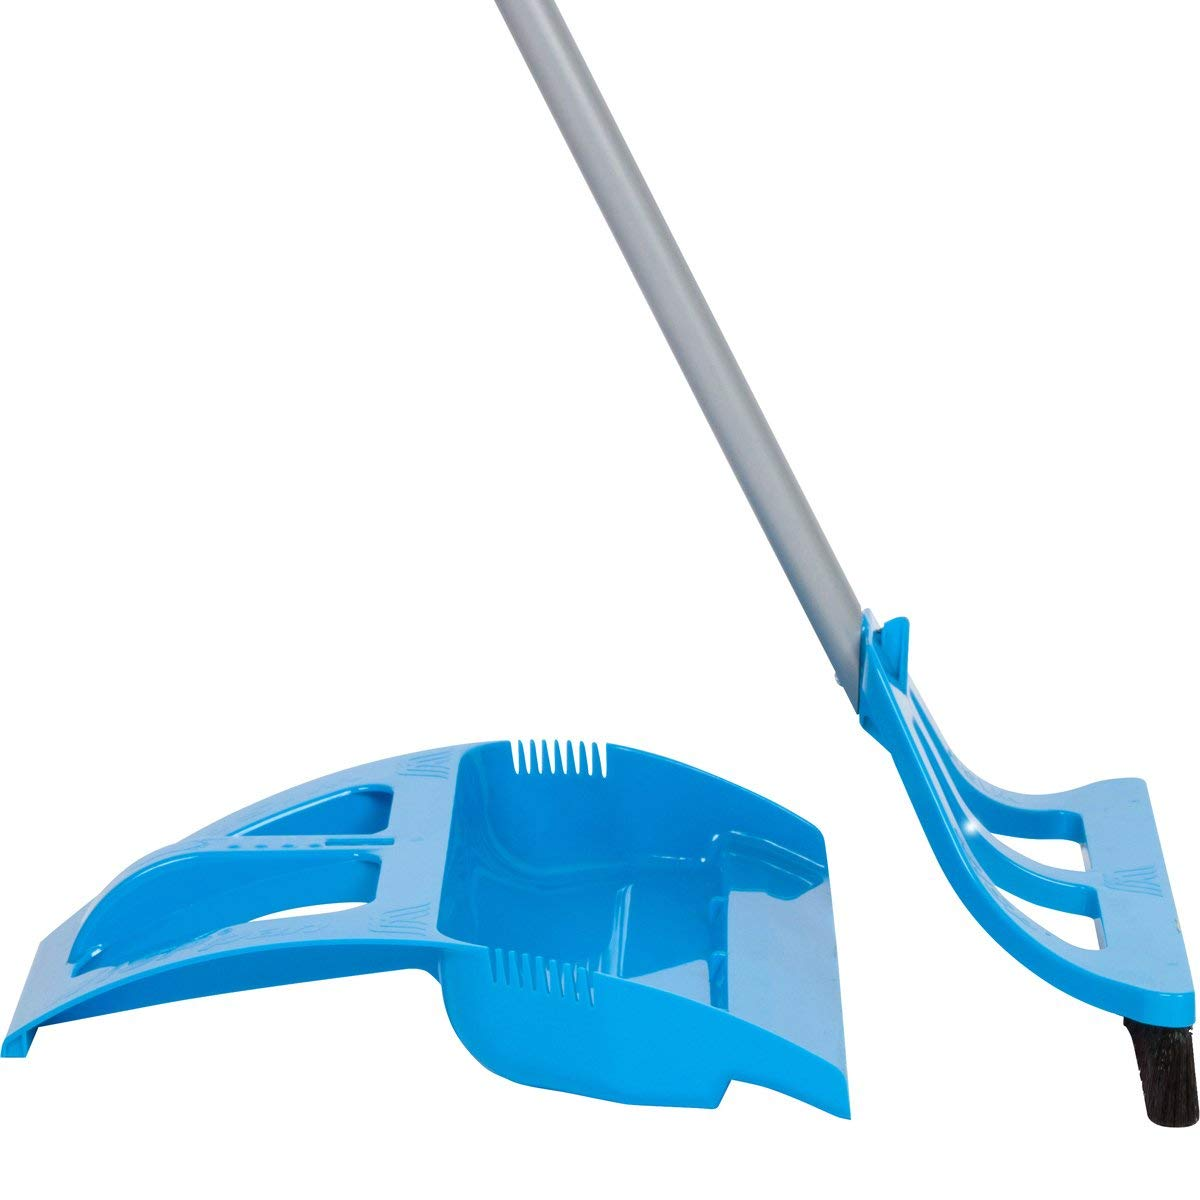 Broom and Dustpan System